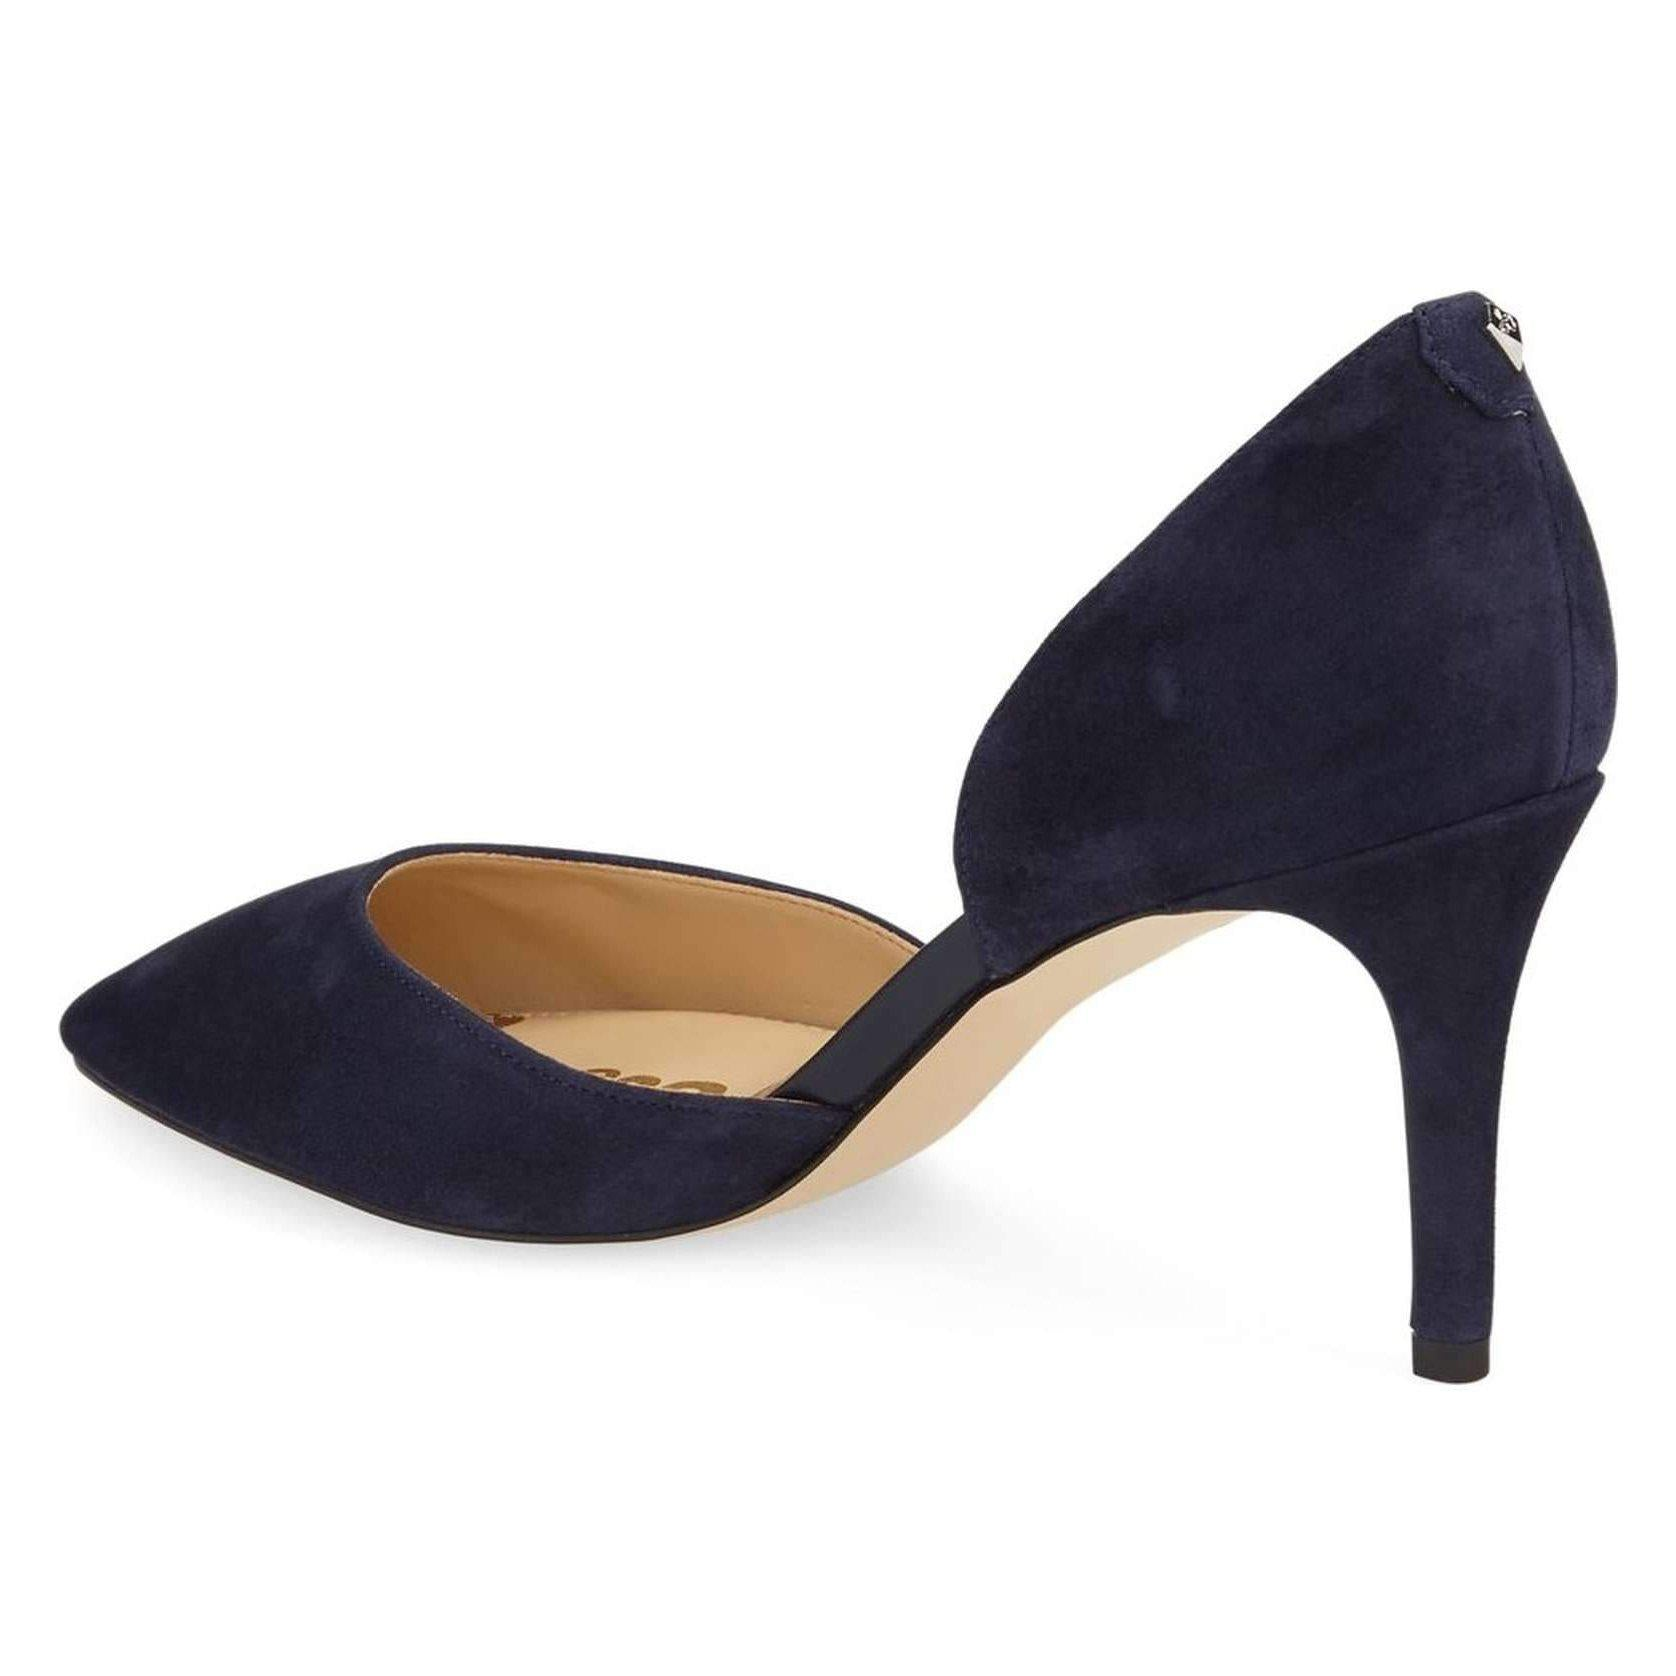 77766ef12875 Sam Edelman Women's Telsa D'Orsay Pump - Navy-Shoes-Sam Edelman-